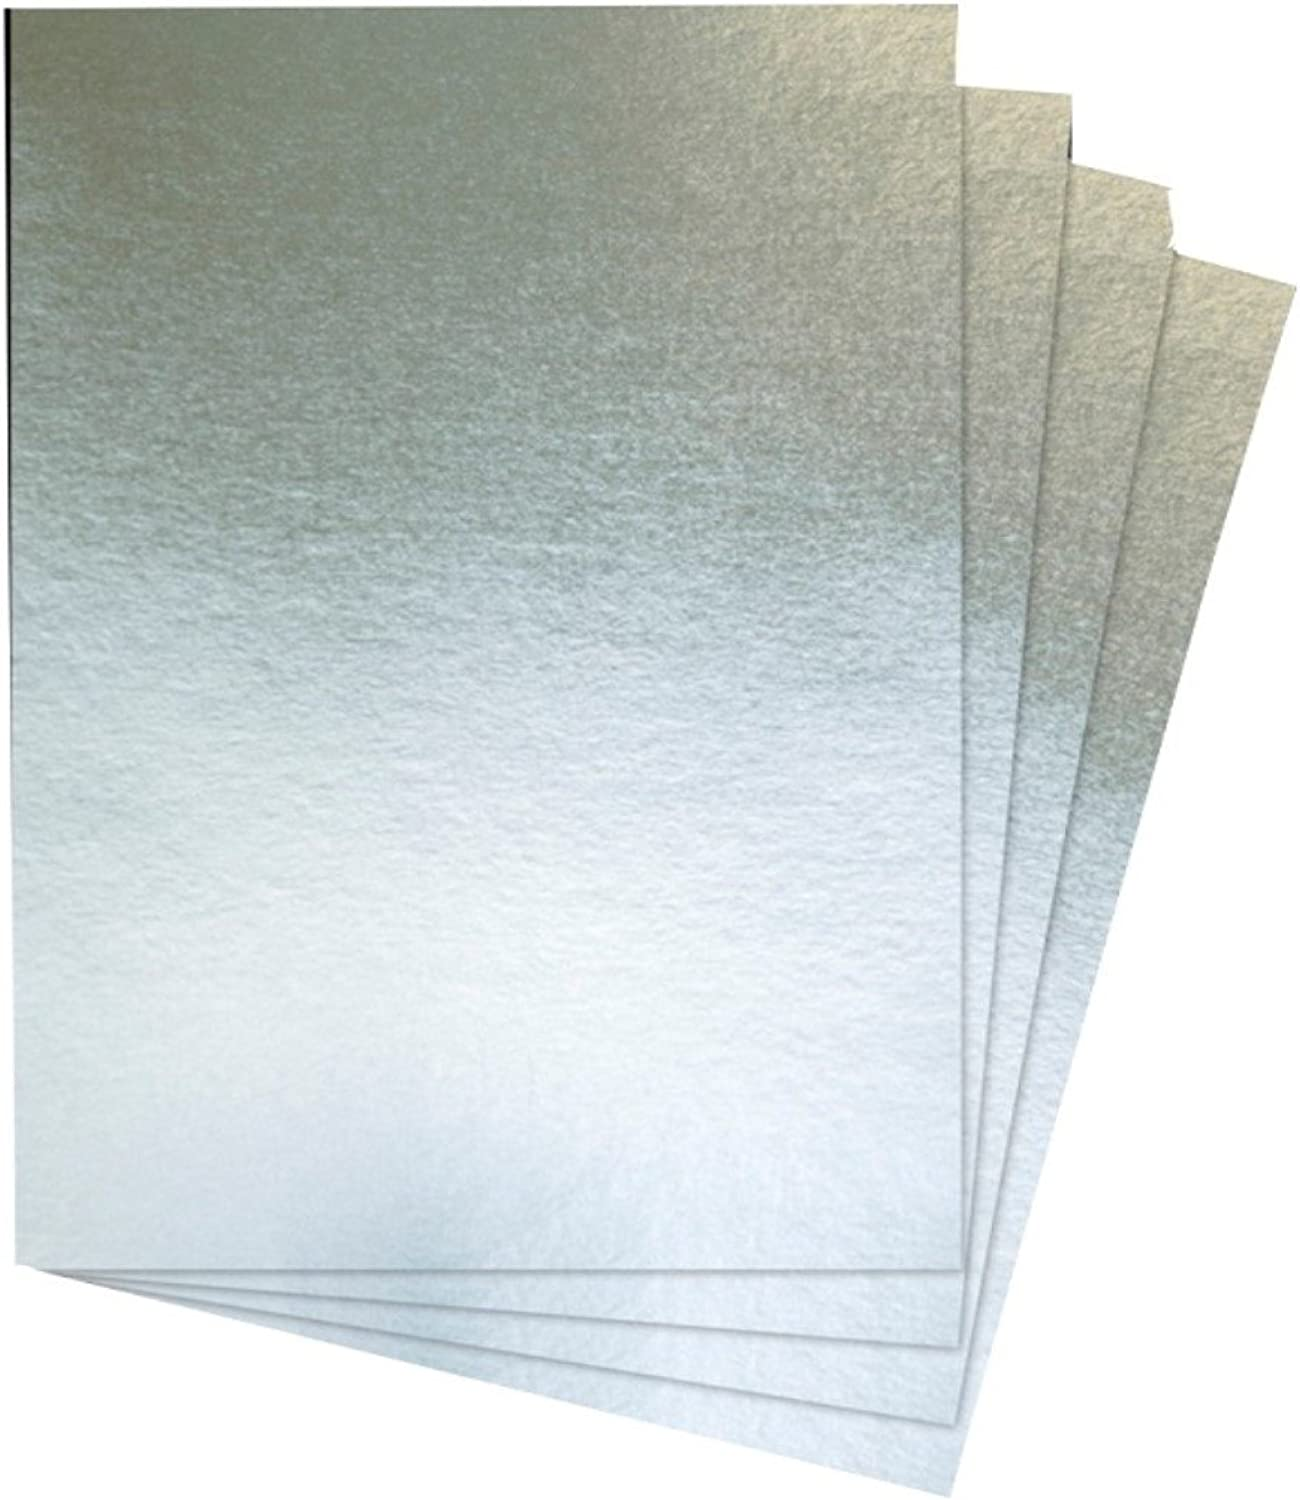 House of Card & Paper A3 240 GSM Foil Card  Silver (Pack of 30 Sheets)